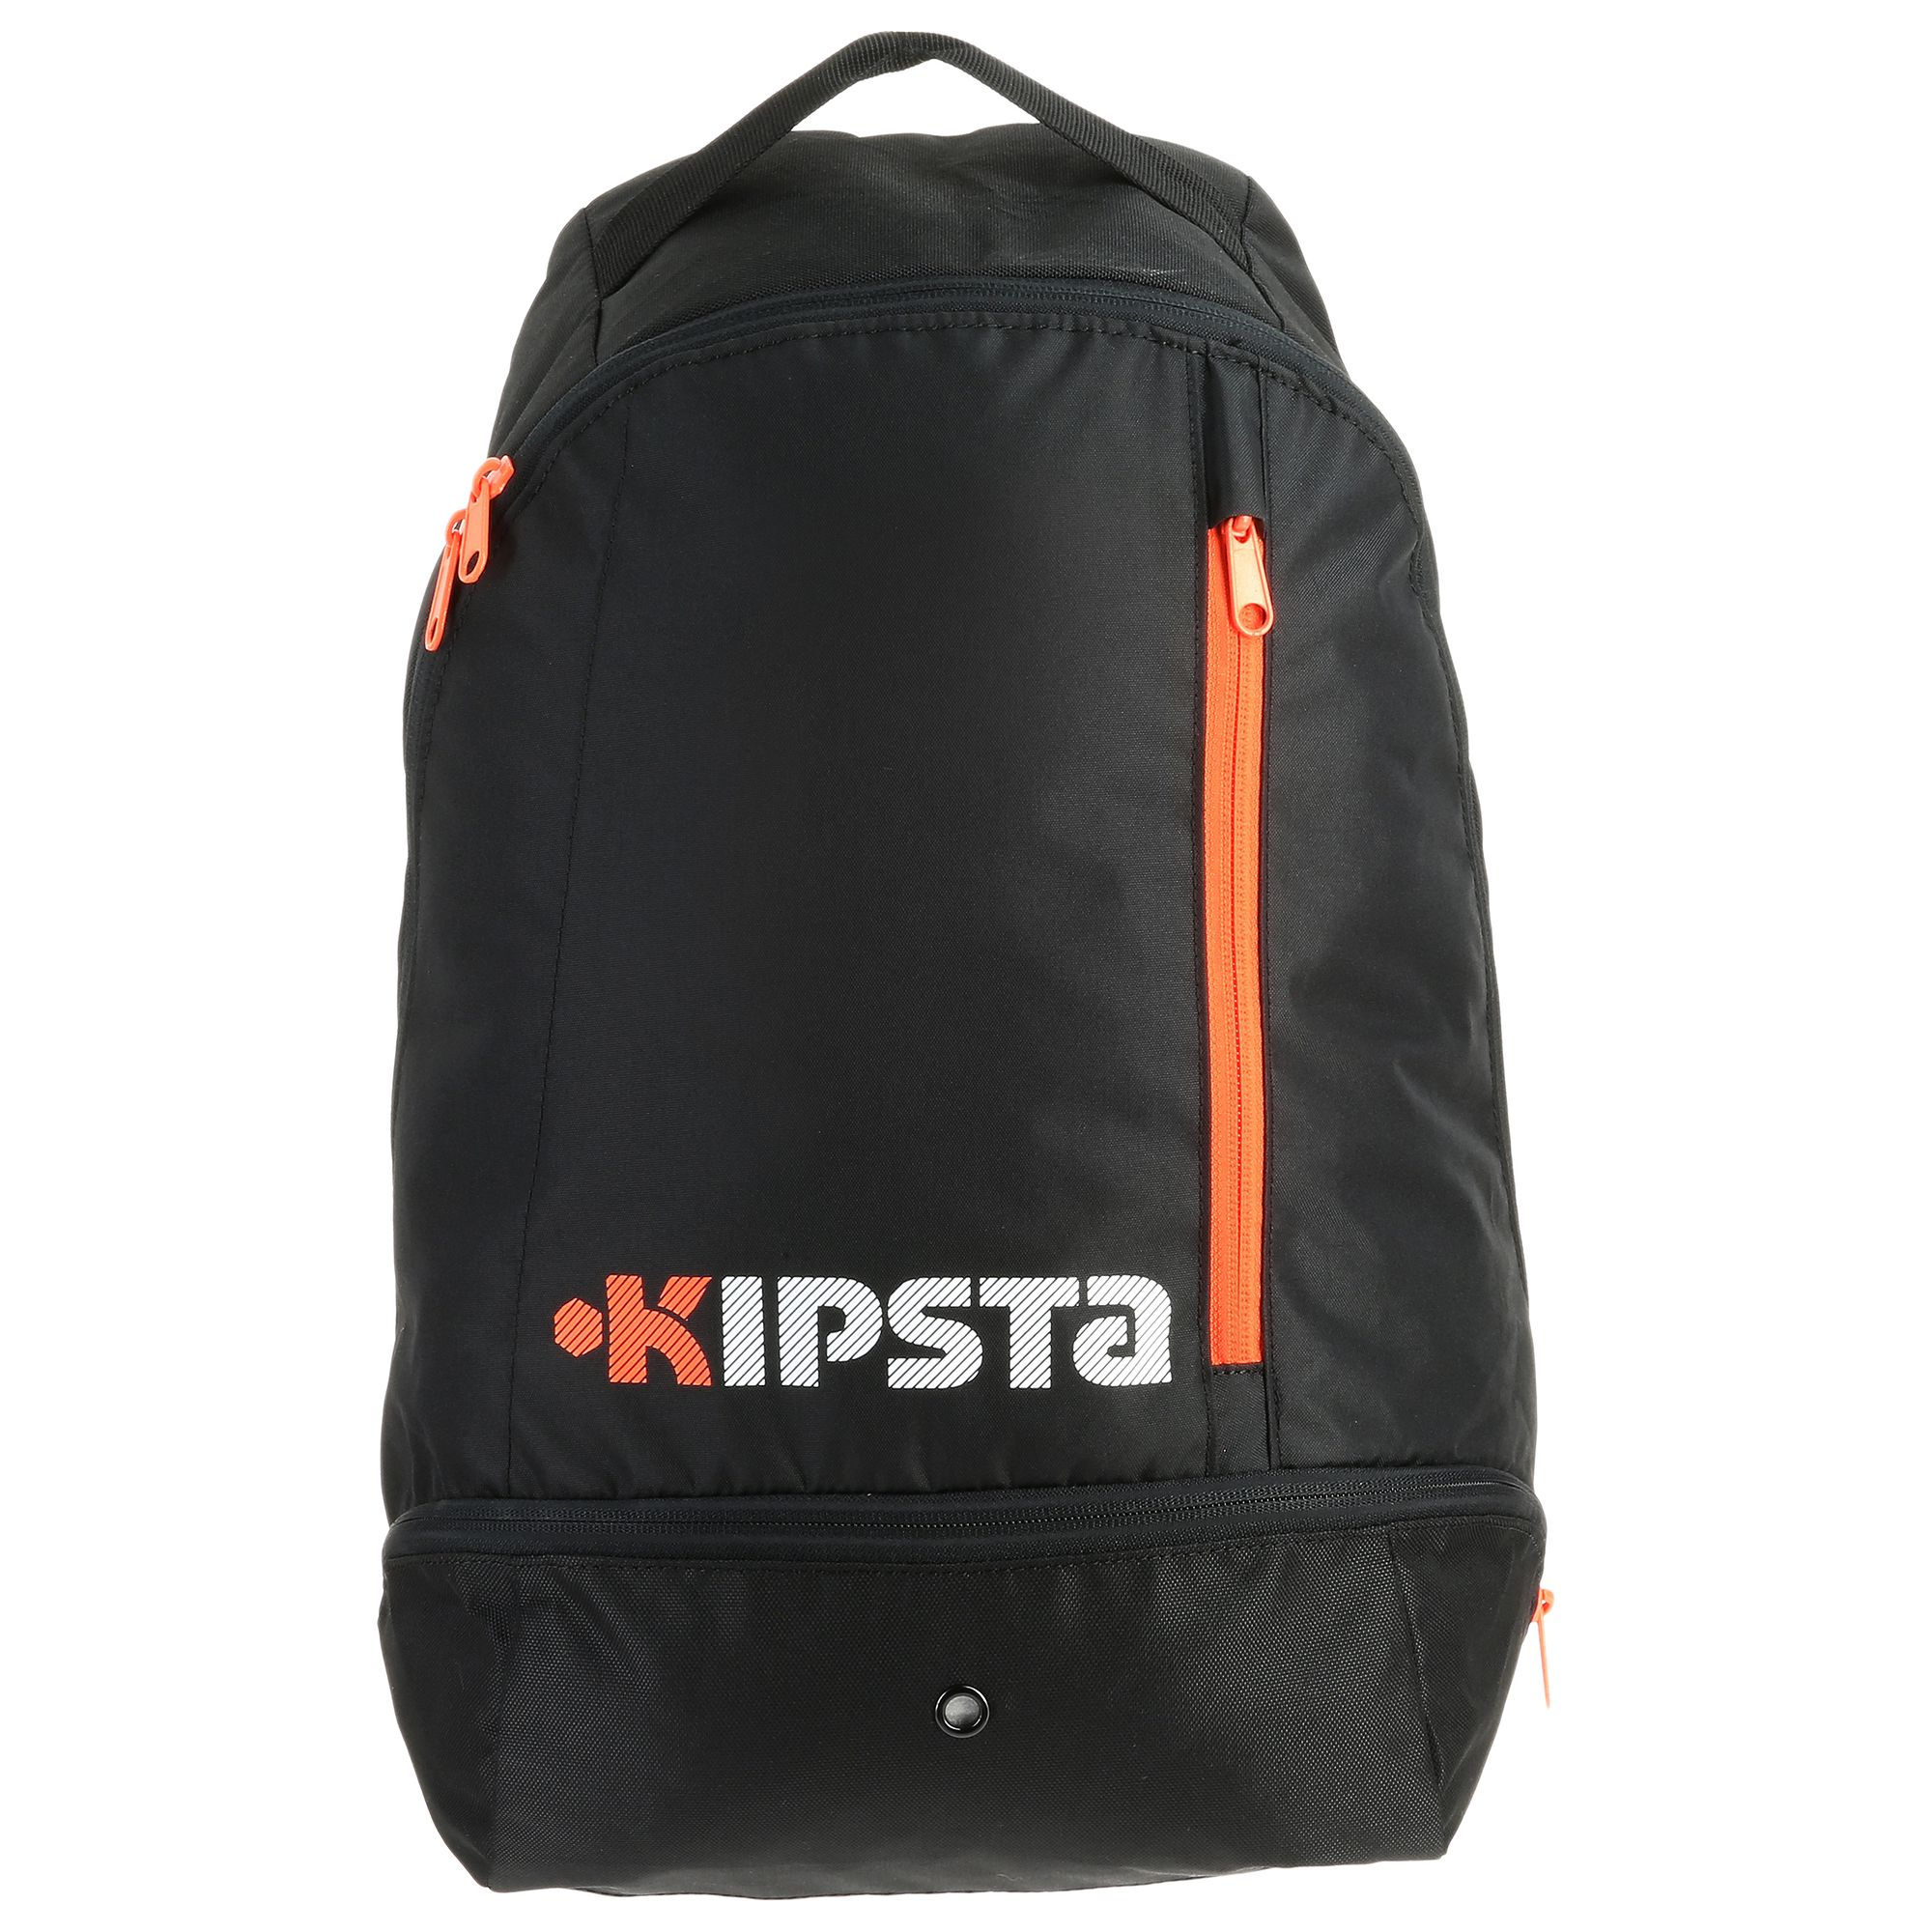 Sac à dos sports collectifs Intensif 20 litres noir orange